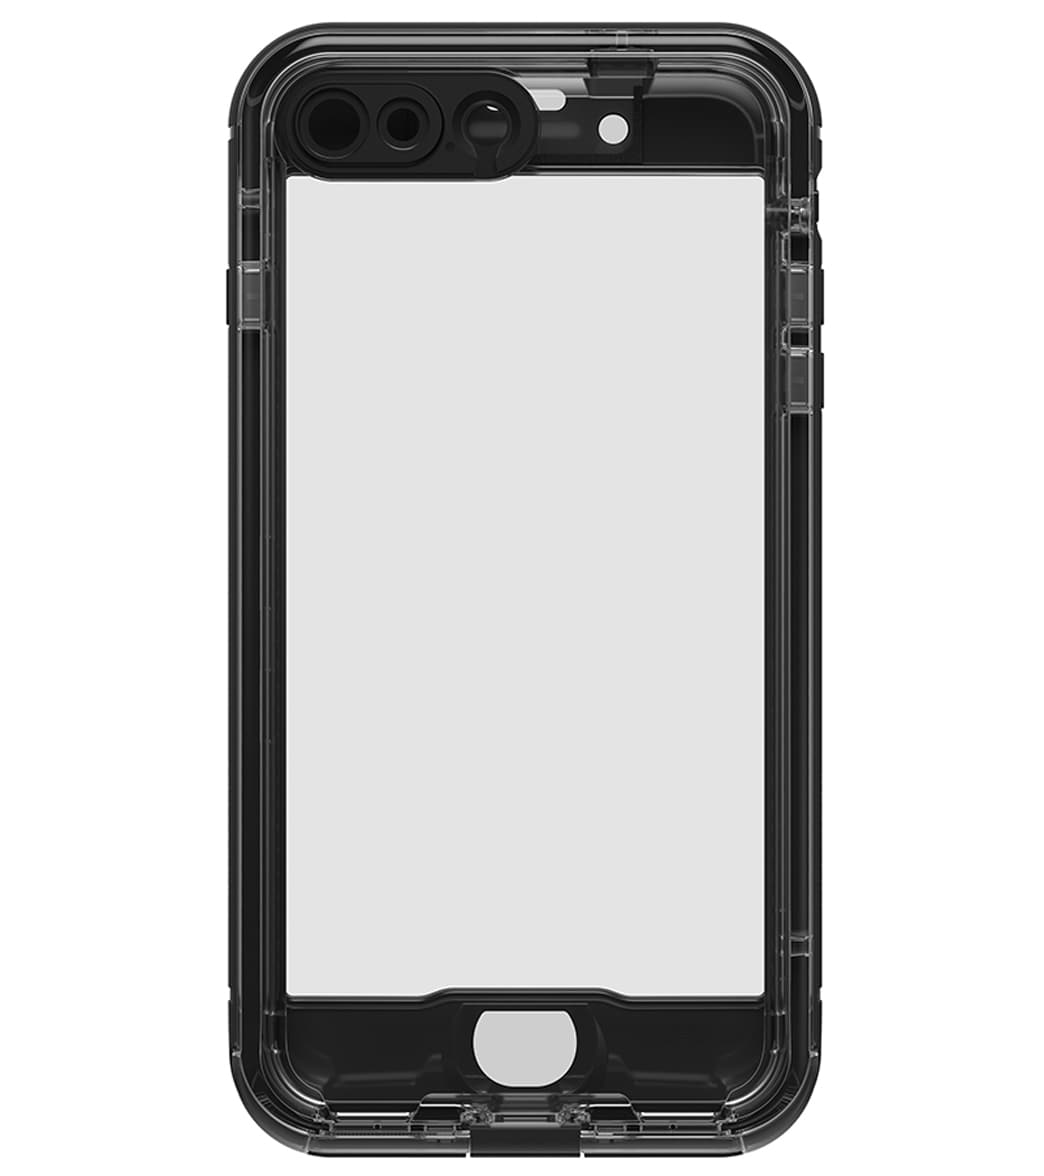 huge discount 4baa4 cfef2 LifeProof NUUD iPhone 7 Waterproof Phone Case